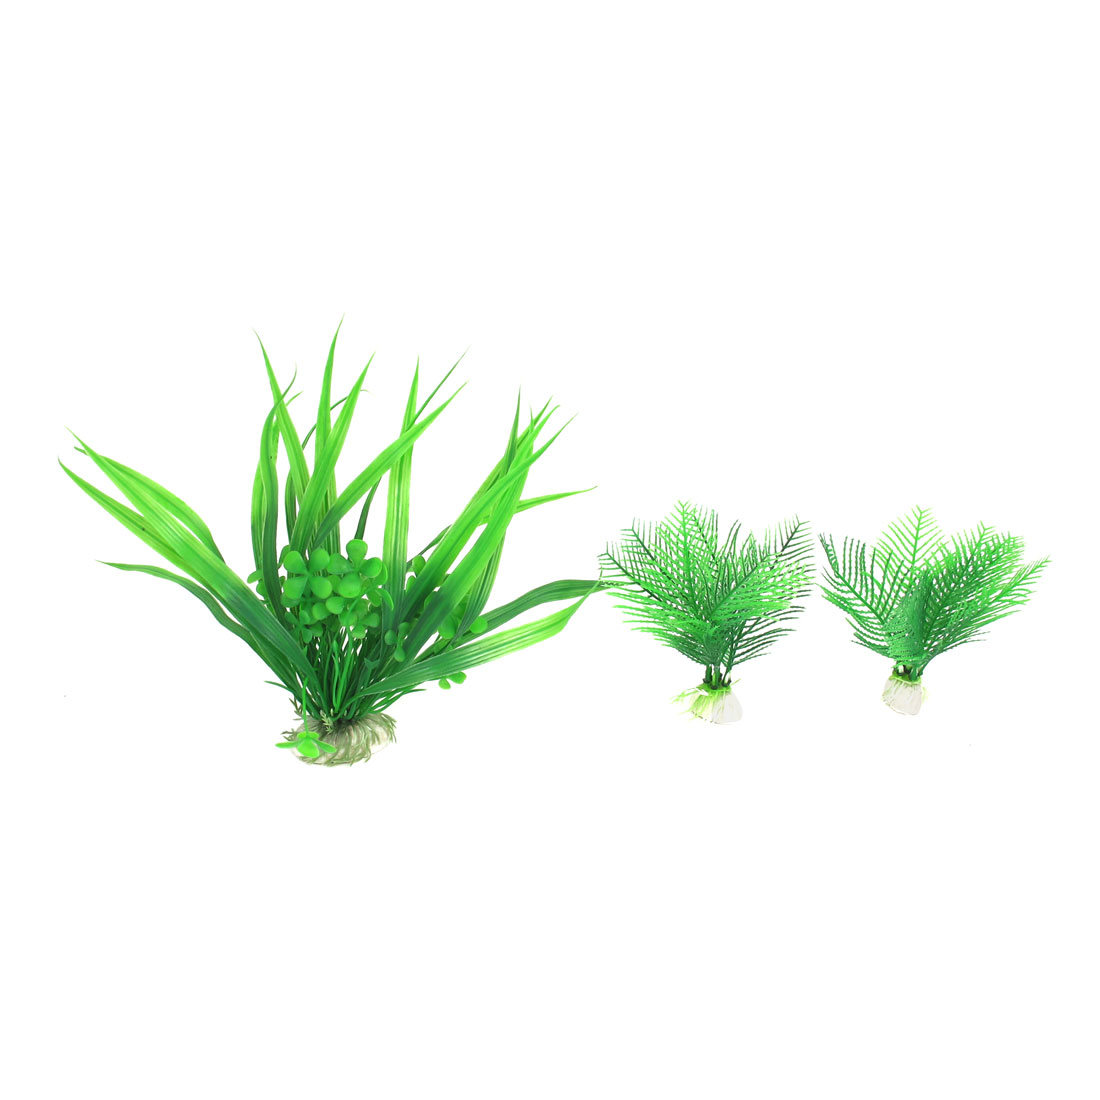 3 Pcs Green Plastic Oval Ceramic Base Artificial Ornament Underwater Plants for Fish Tank Aquarium